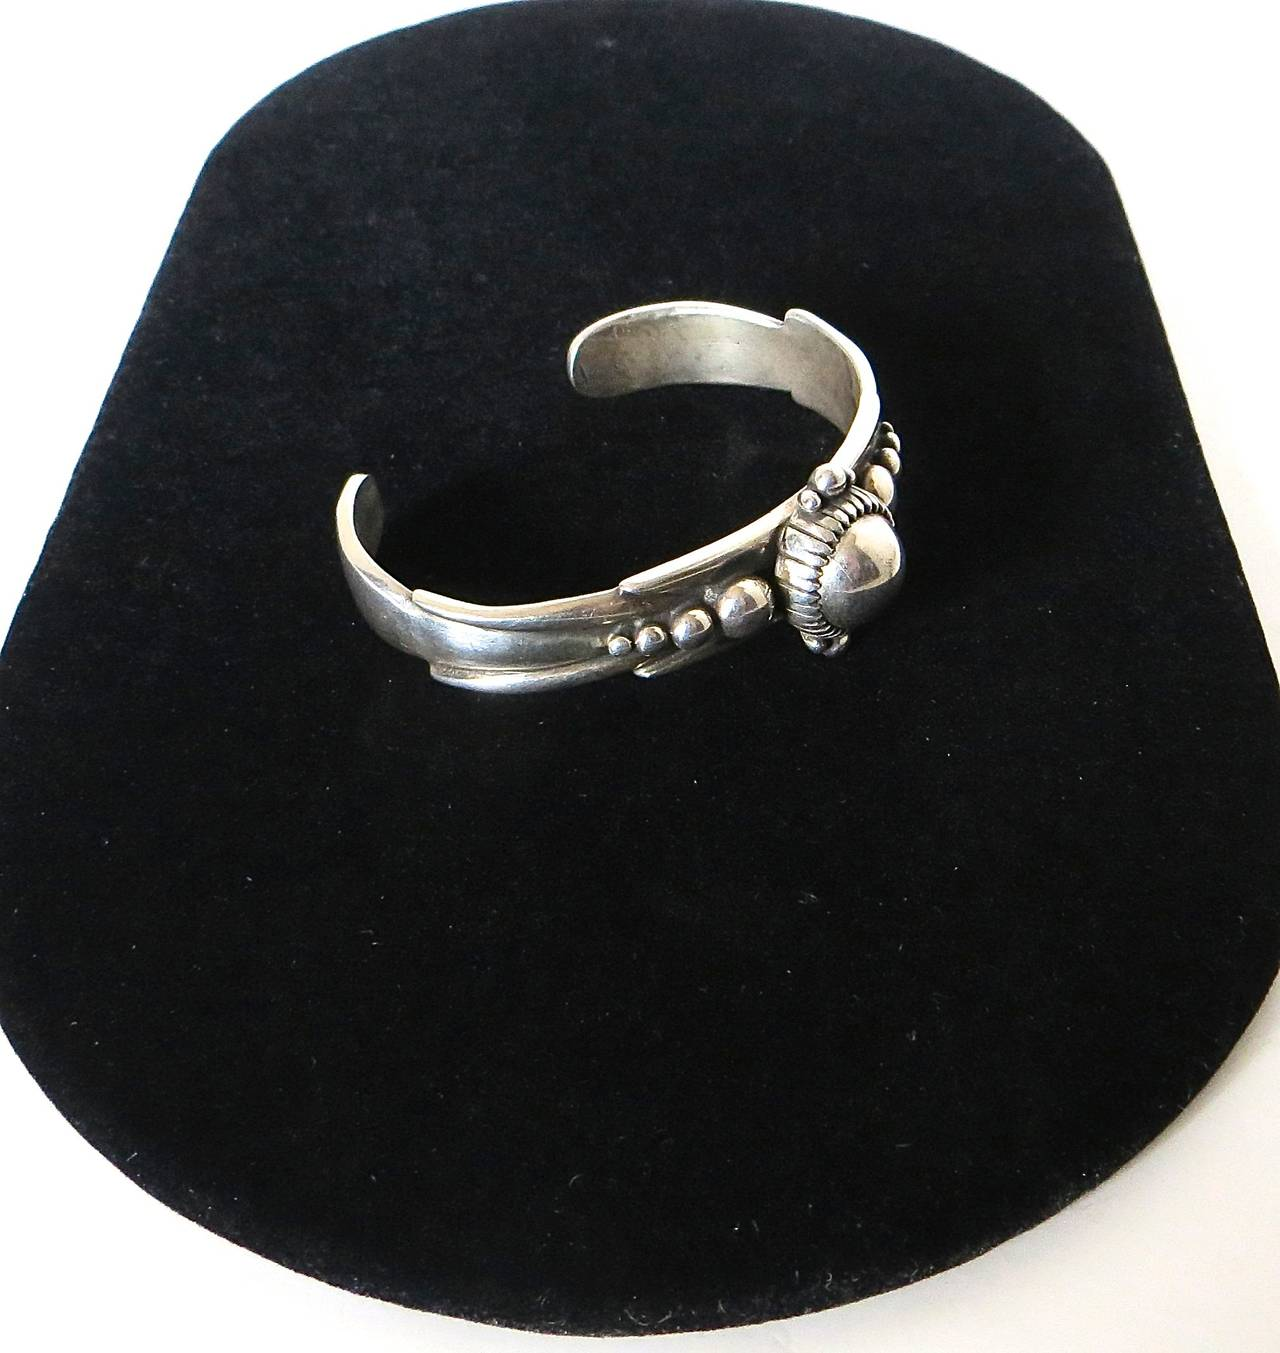 Sterling Silver Bracelet by David Dear 'Contemporary' In Excellent Condition For Sale In Incline Village, NV